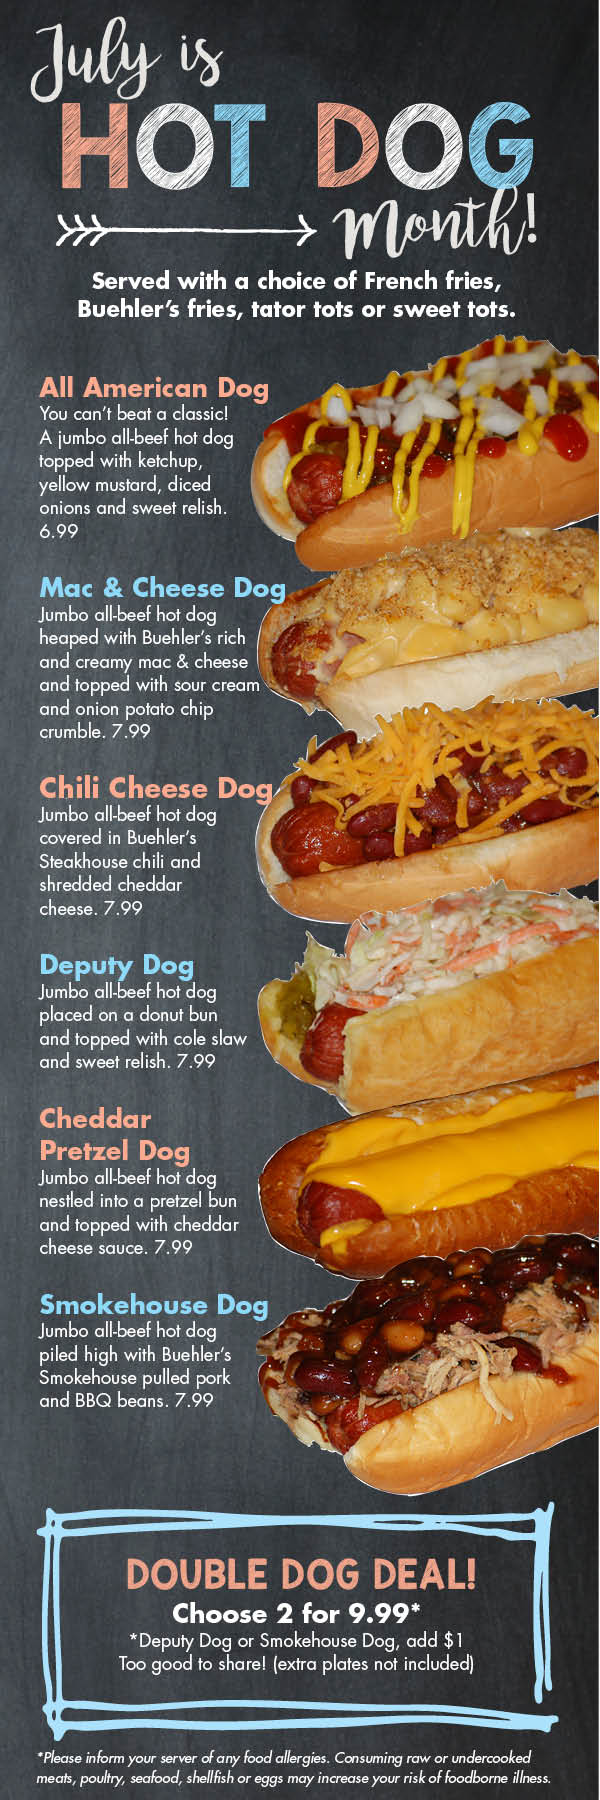 Hot Dog Month Restaurant Specials for July